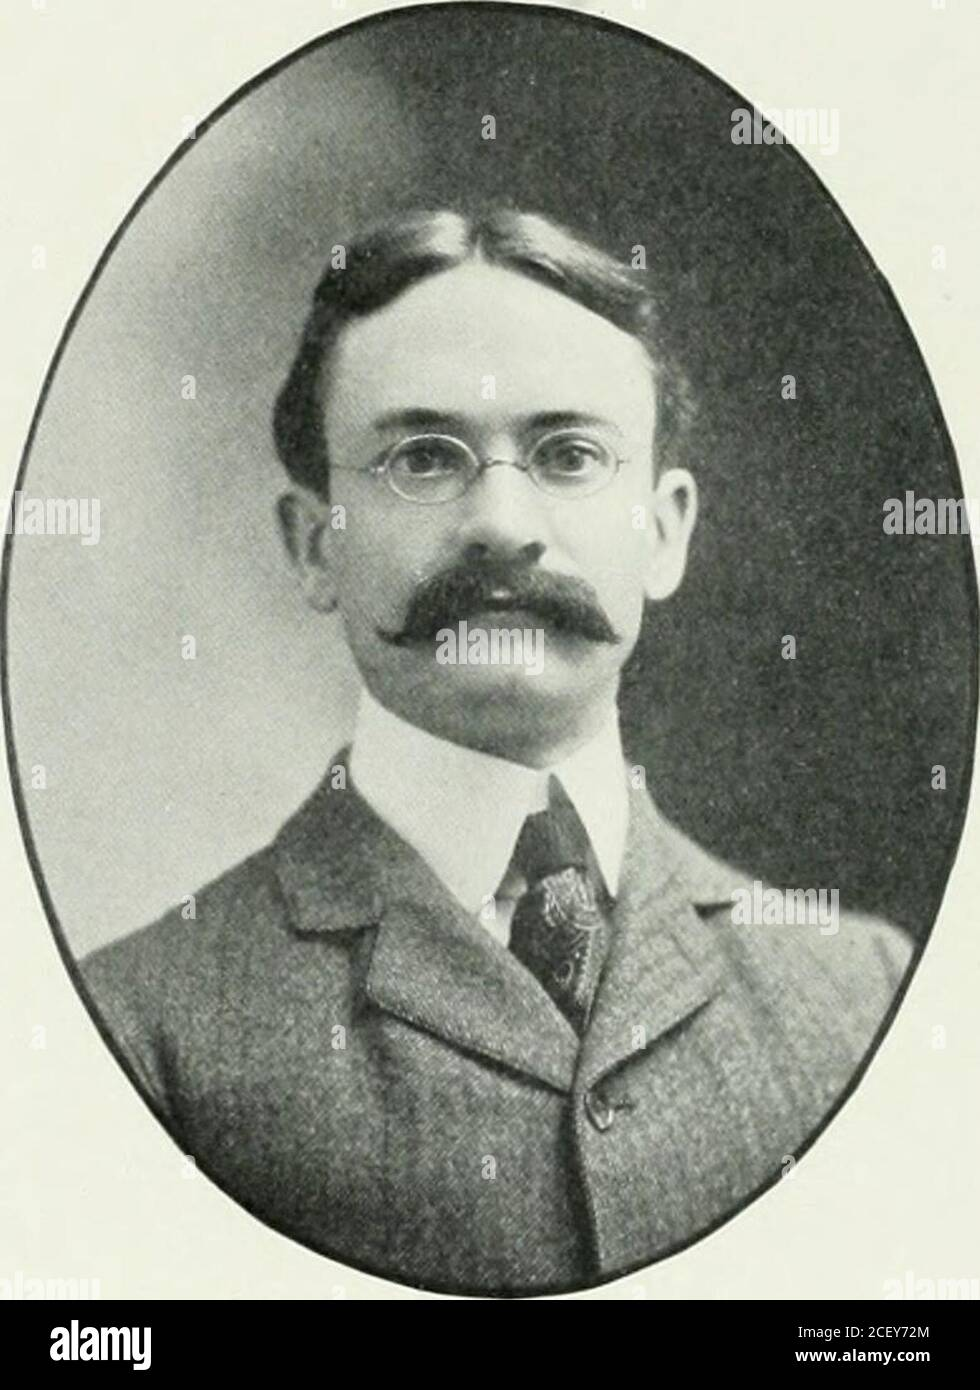 . Picturesque New London and its environs : Grofton, Mystic, Montville, Waterford, at the commencement of the twentieth century. tional telegraphic contest held atMadison Square Garden, New YorkCity, he was awarded the first prizefor rapid sending. Mr. Edney be-came connectedwith the brok-erage firm of F.A. Rogers &C o m p a n y i n1S99. and openedtheir New Lon-(1 I) n 0Ific e in.1 u n c of thatyear. This firmsleased wire sys-tem is the mostextensive of thatin operation byany similar con-c e r n in NewEngland. Theiroffices connectedliy private wiresare about fifty innumber. Thej-have also nume Stock Photo